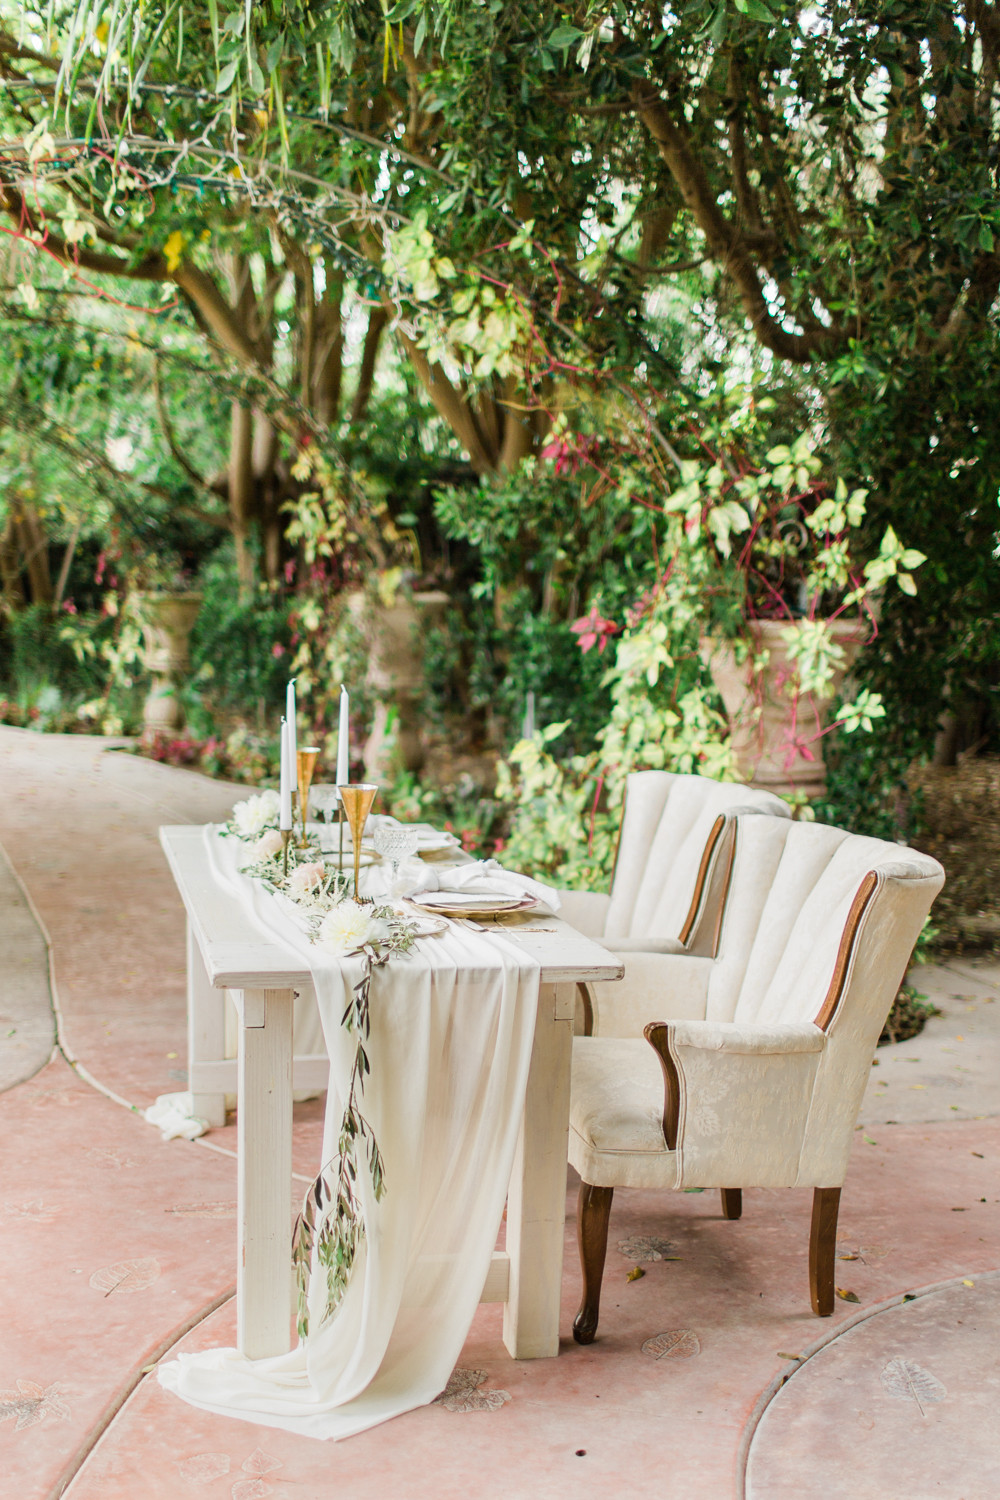 Sweetheart table set under a canopy of trees